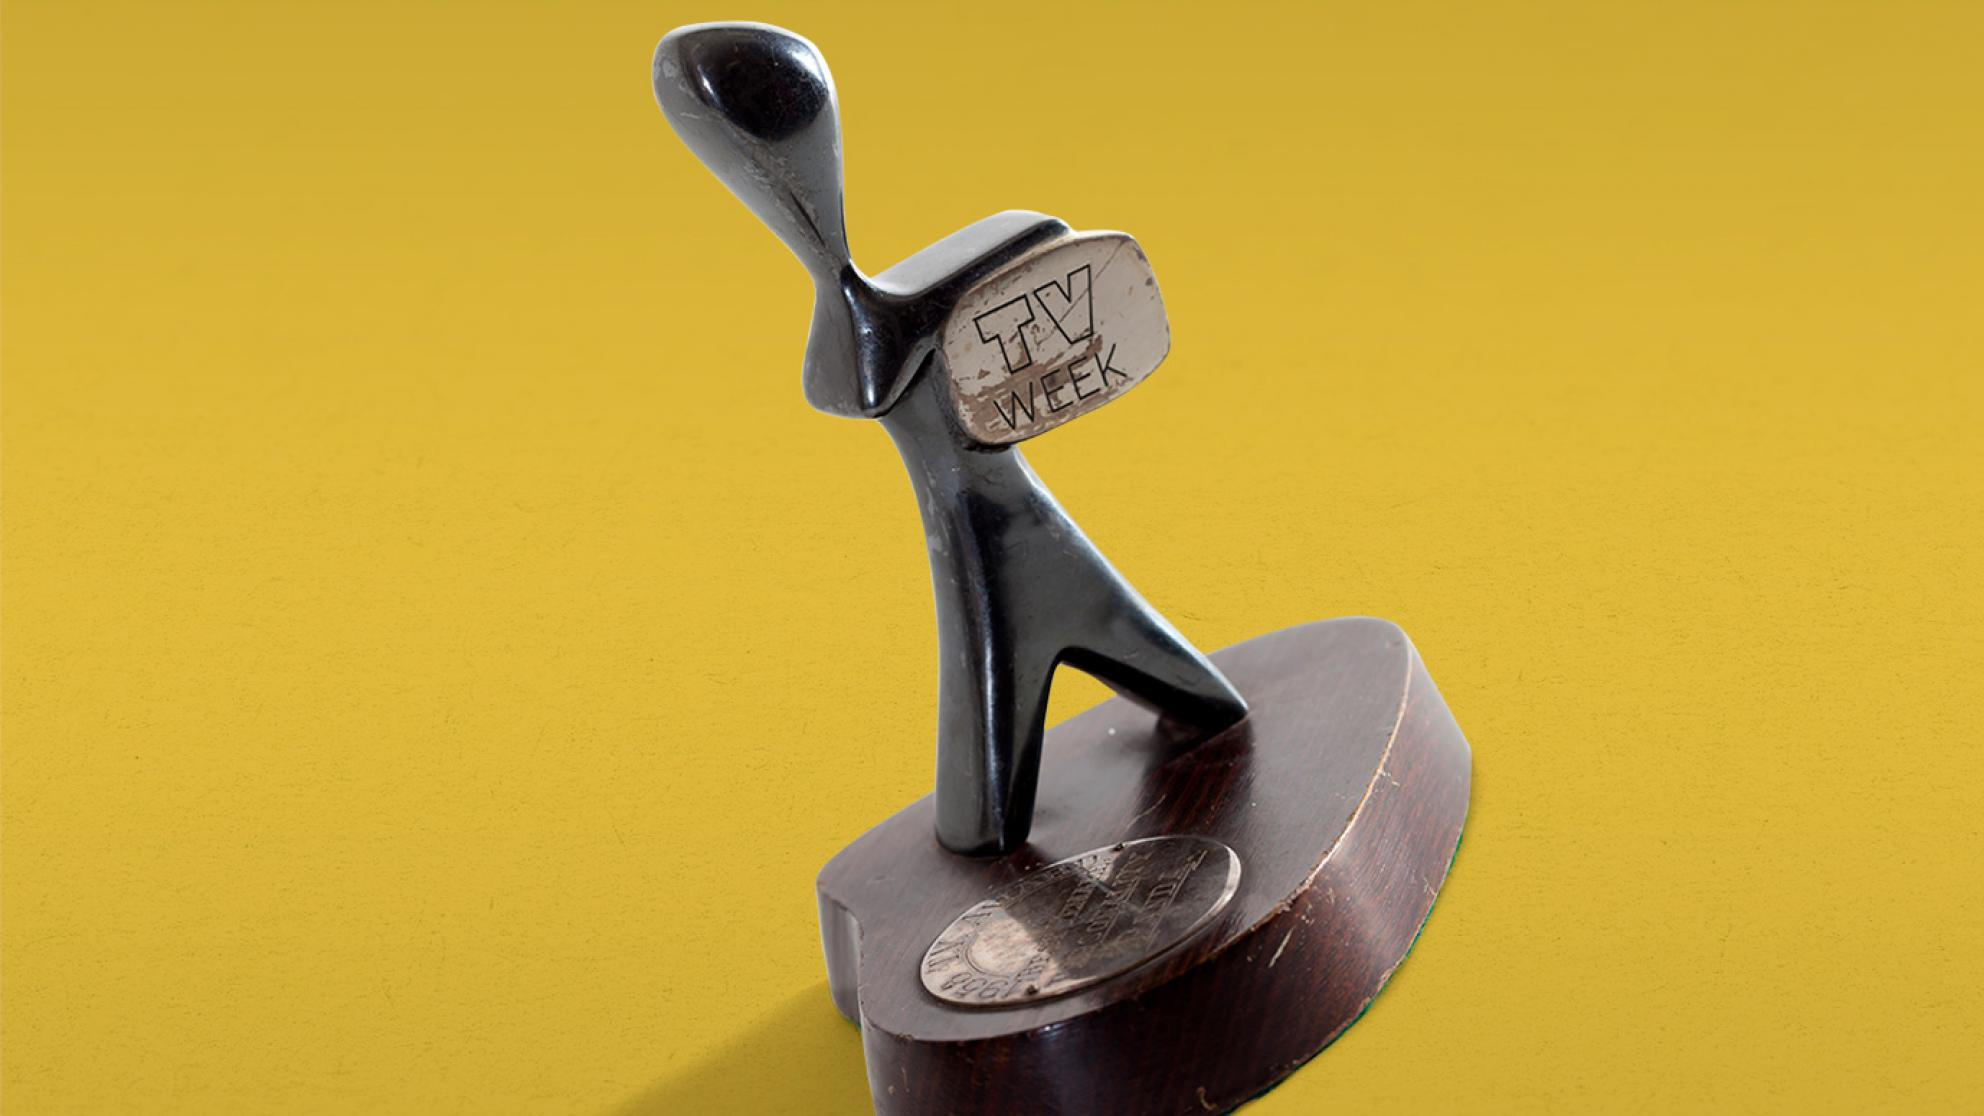 A TV Week Logie Award, made up of a small silver statuette in the shape of a man holding a television. The statuette sits on a round wooden base with a metal disc with words engraved on it.